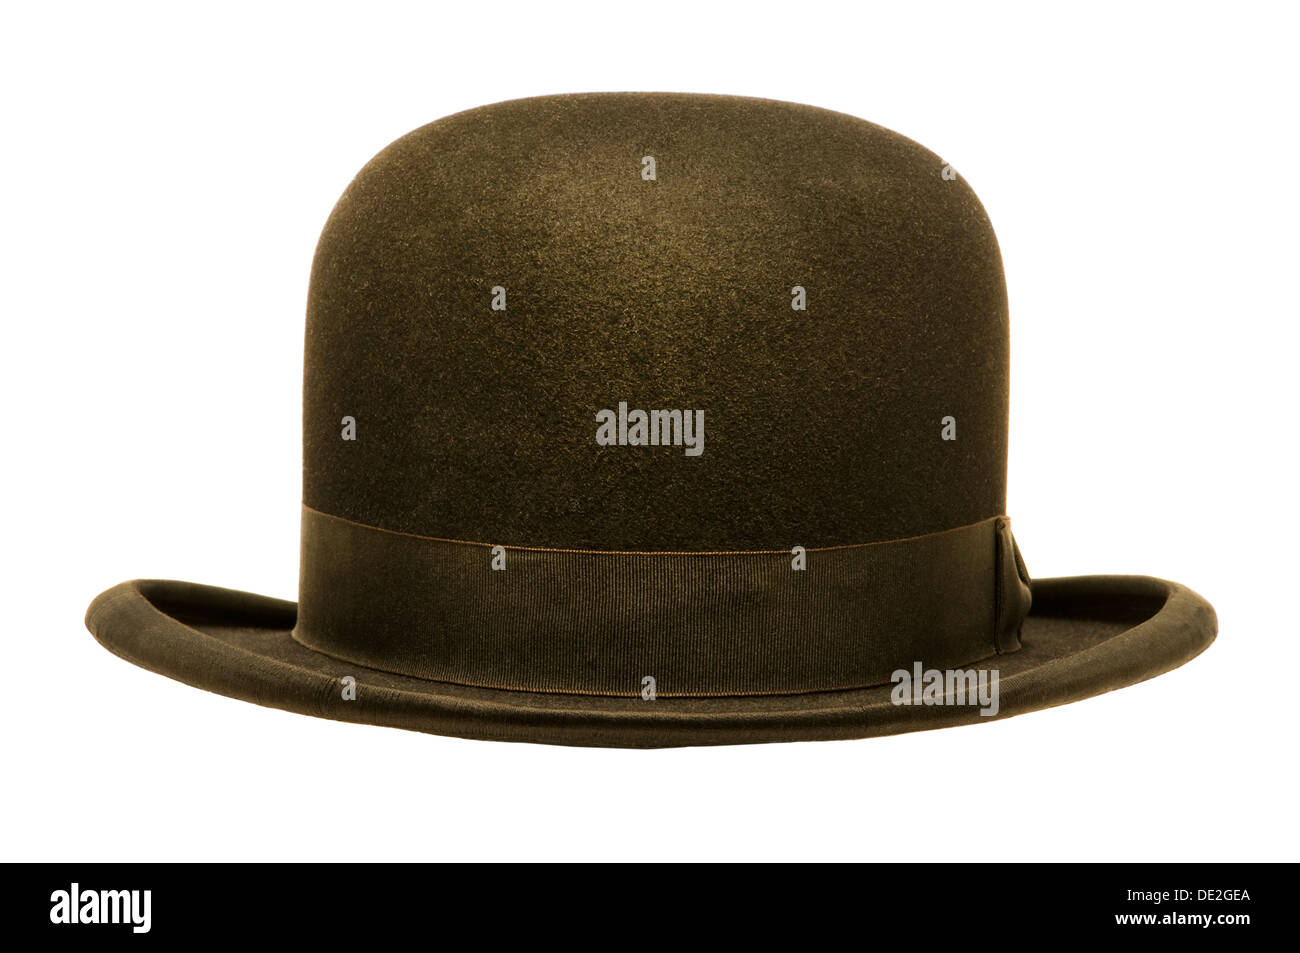 d7a40a0d96b A black derby or bowler hat isolated against a white background ...